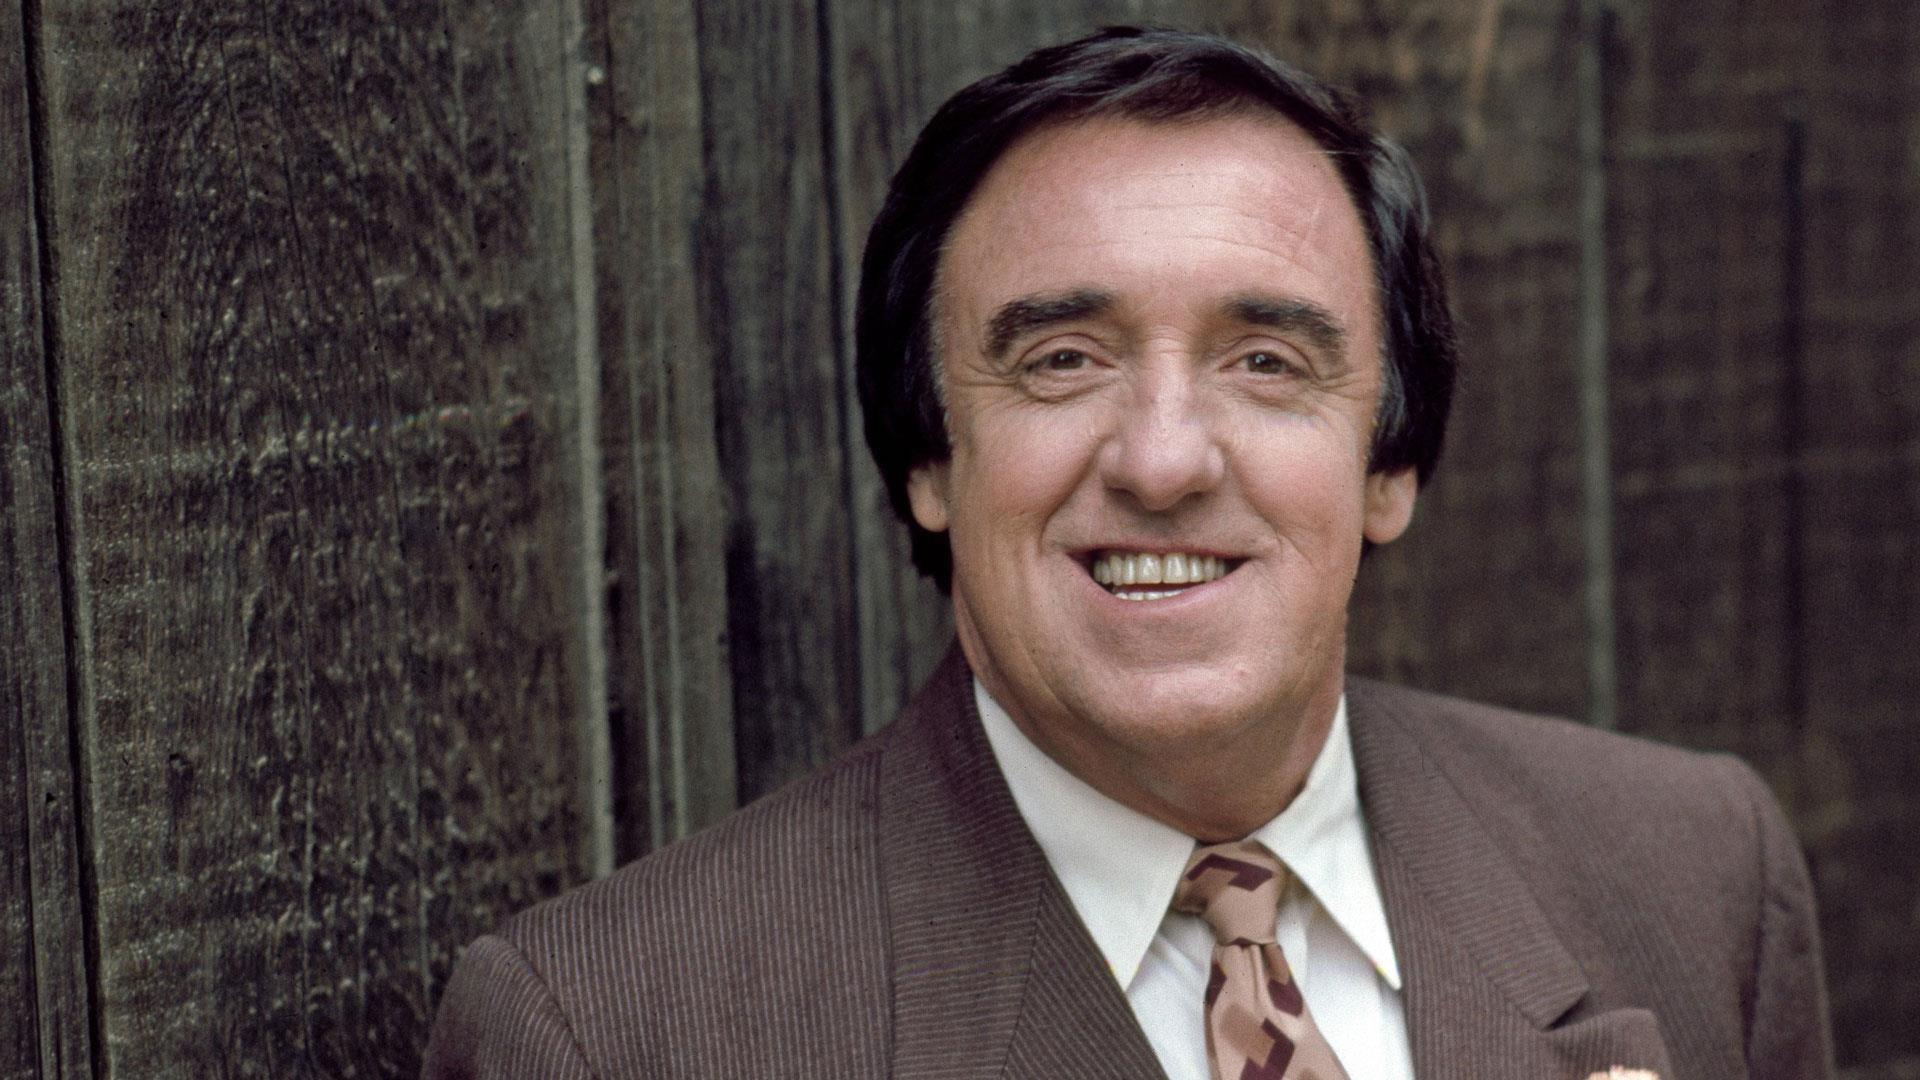 Jim Nabors Who Starred As Gomer Pyle On The Andy Griffith Show Dies At 87 Nabors' husband, stan cadwallader, confirmed the death to the associated press, noting that the actor had been in cadwallader was at his side, at their home in hawaii, when nabors died. beloved tv star jim nabors dies at 87